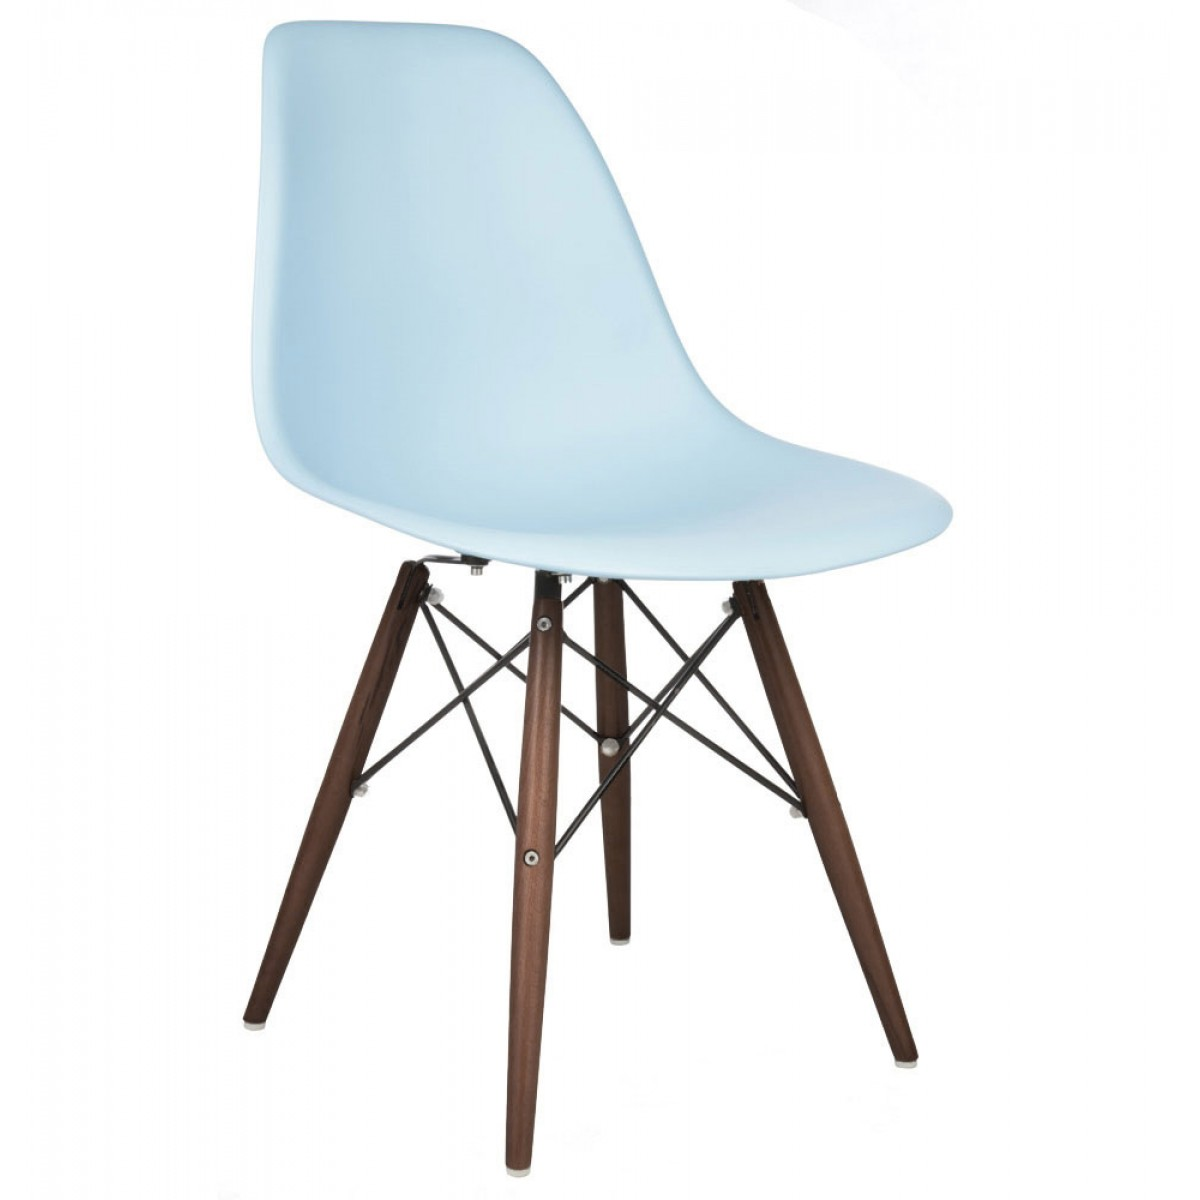 Molded Plastic Dining Chairs eames style dsw molded light blue plastic dining shell chair with